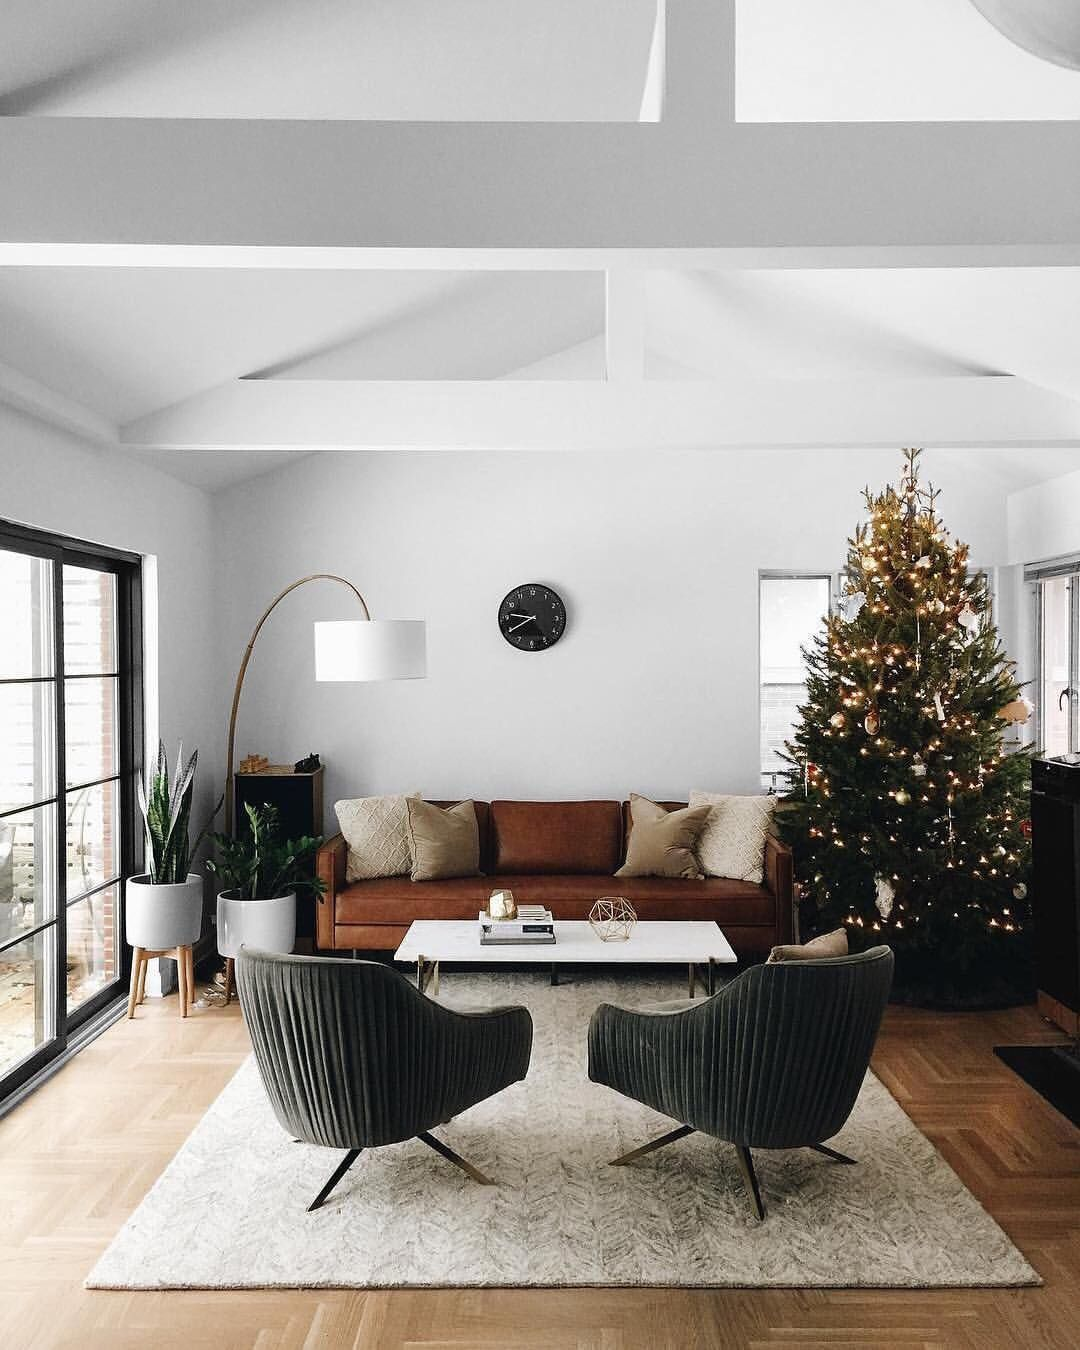 Mid century modern living room style is born in the period between ...